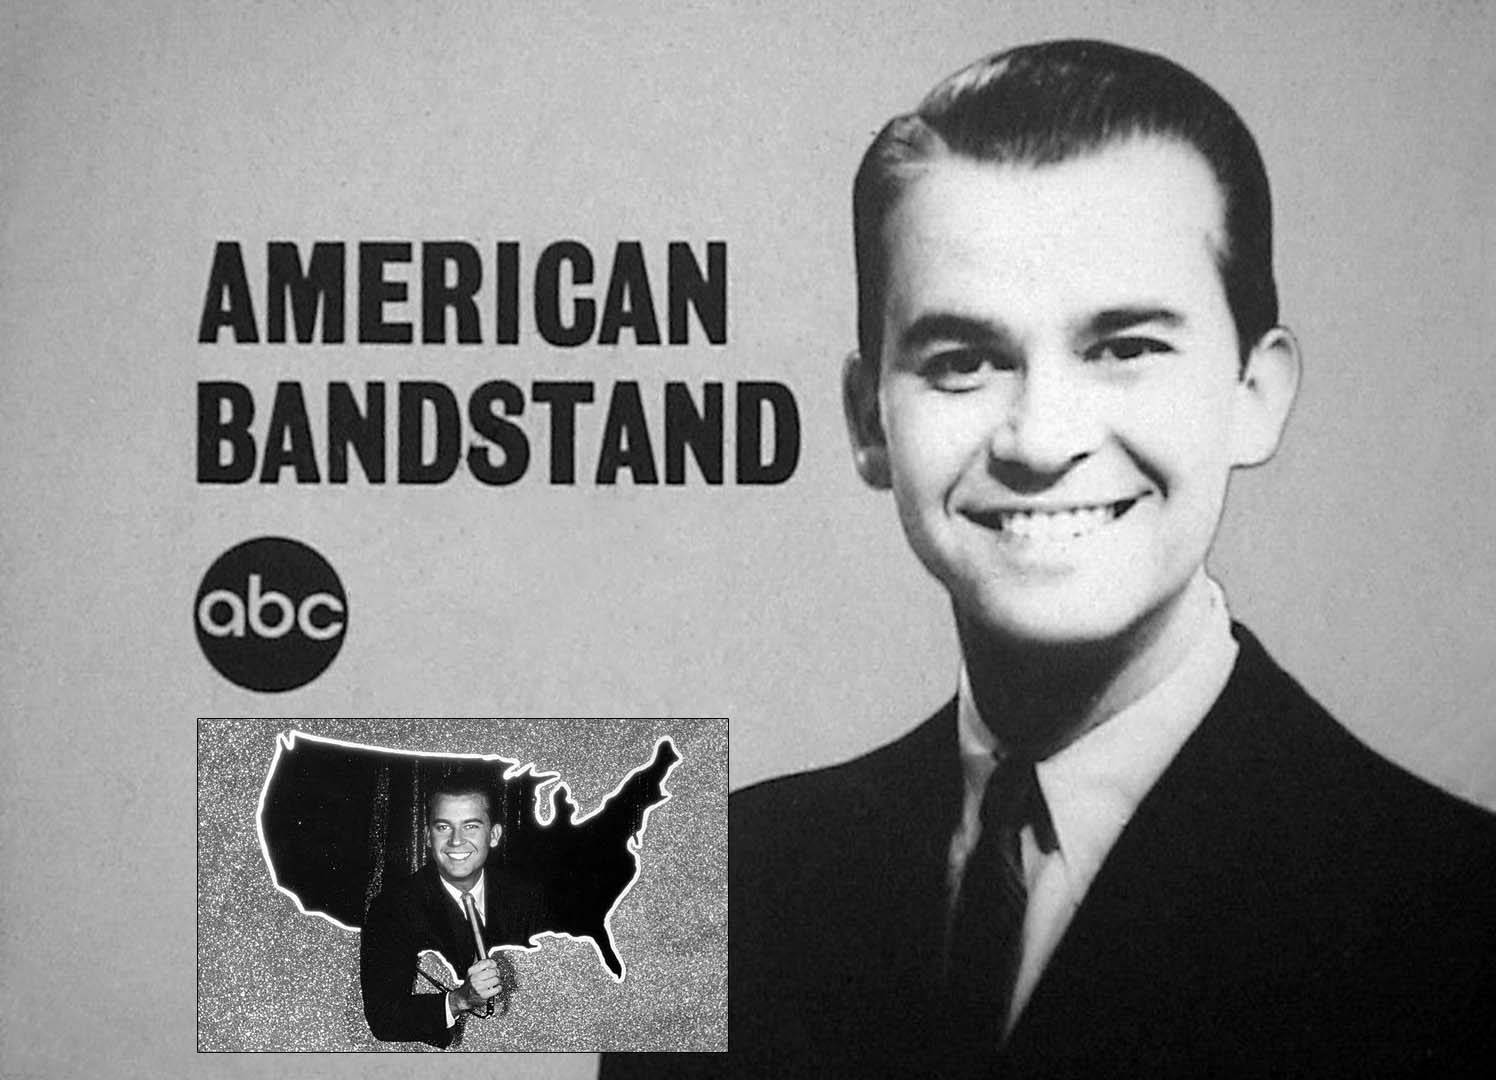 dick clarks american bandstand Buy dick clark's american bandstand theater tickets at ticketmastercom find dick clark's american bandstand theater venue concert and event schedules, venue.